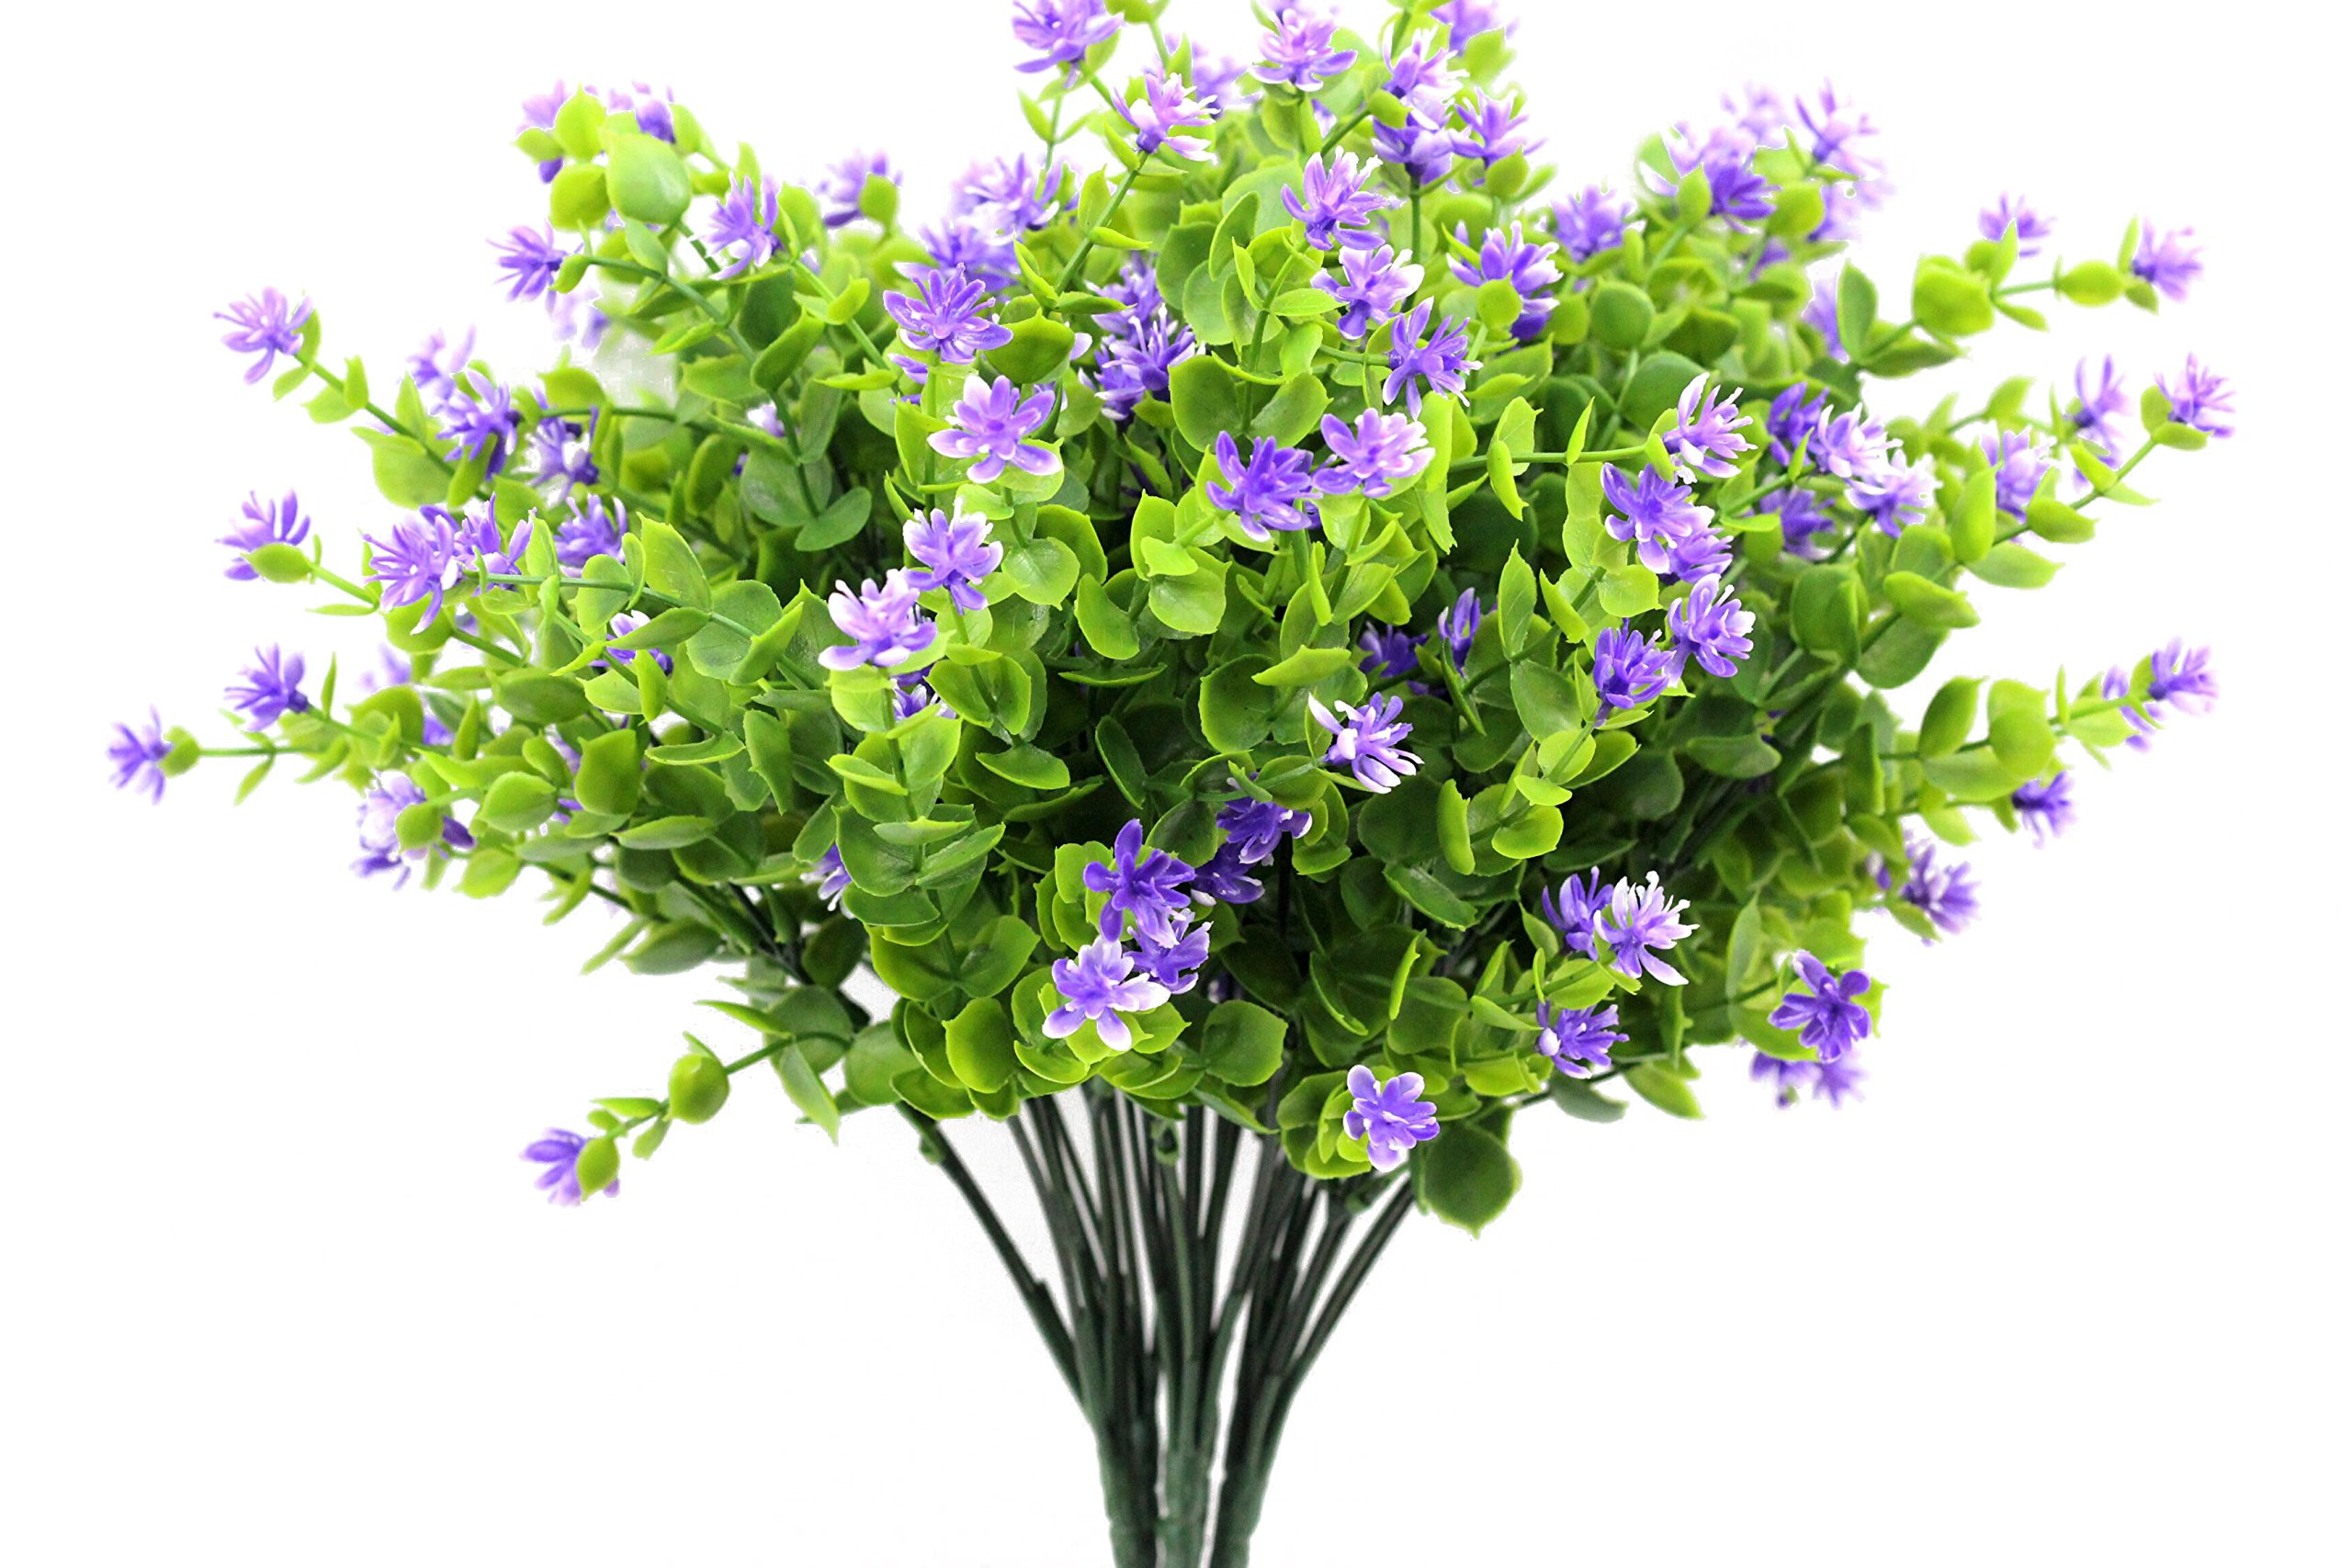 kingbuy Artificial Flowers 6 Bundles Outdoor UV Resistant Plants Shrubs Plastic Leaves Fake Bushes Greenery for Plants Indoor Outside Hanging Planter Home Patio Yard Garden Decor Window Box